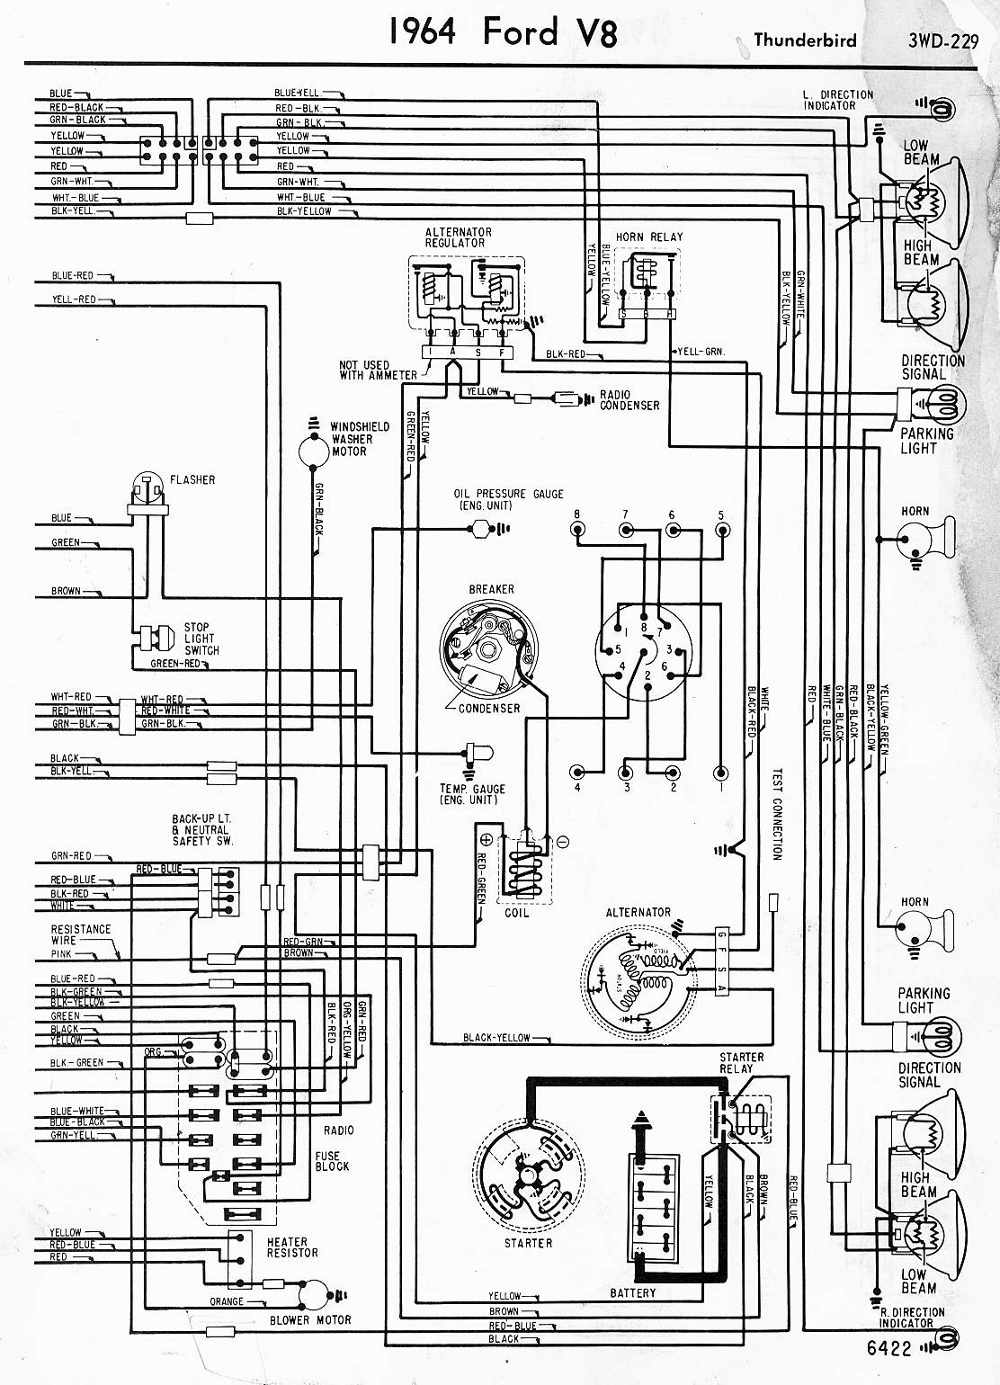 Free Corvette Wiring Diagram - machine learning on 1979 corvette repair manual, 1979 corvette horn diagram, 1979 corvette antenna, 1979 corvette air conditioning diagram, 1979 corvette power steering, 1979 corvette ac diagram, 1979 corvette ac wiring, 1970 corvette vacuum diagram, 1979 corvette headlight wiring, 1979 corvette exhaust diagram, 1979 corvette tachometer wiring, 1979 corvette fuse, 1979 corvette brake, 1979 corvette door panel removal, 1979 corvette schematic, 1979 corvette regulator, 1979 corvette owner's manual, 1979 corvette ignition, 1979 corvette engine swap, 1979 corvette neutral safety switch,